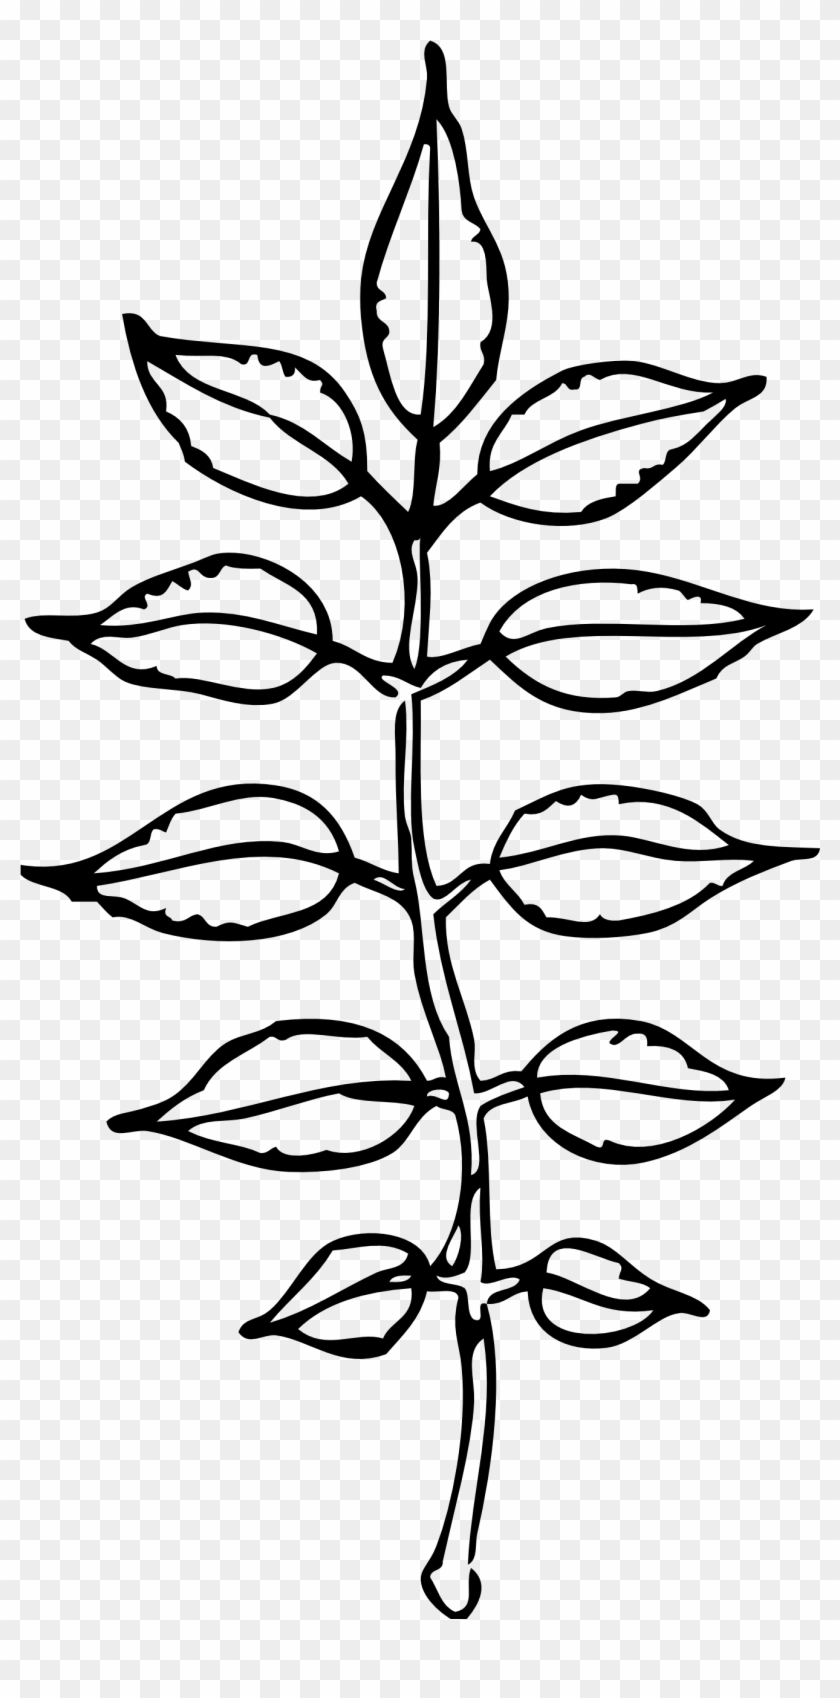 Leaves Black And White Pile Leaves Clip Art Black And - Leaves Black And White Pile Leaves Clip Art Black And #1408